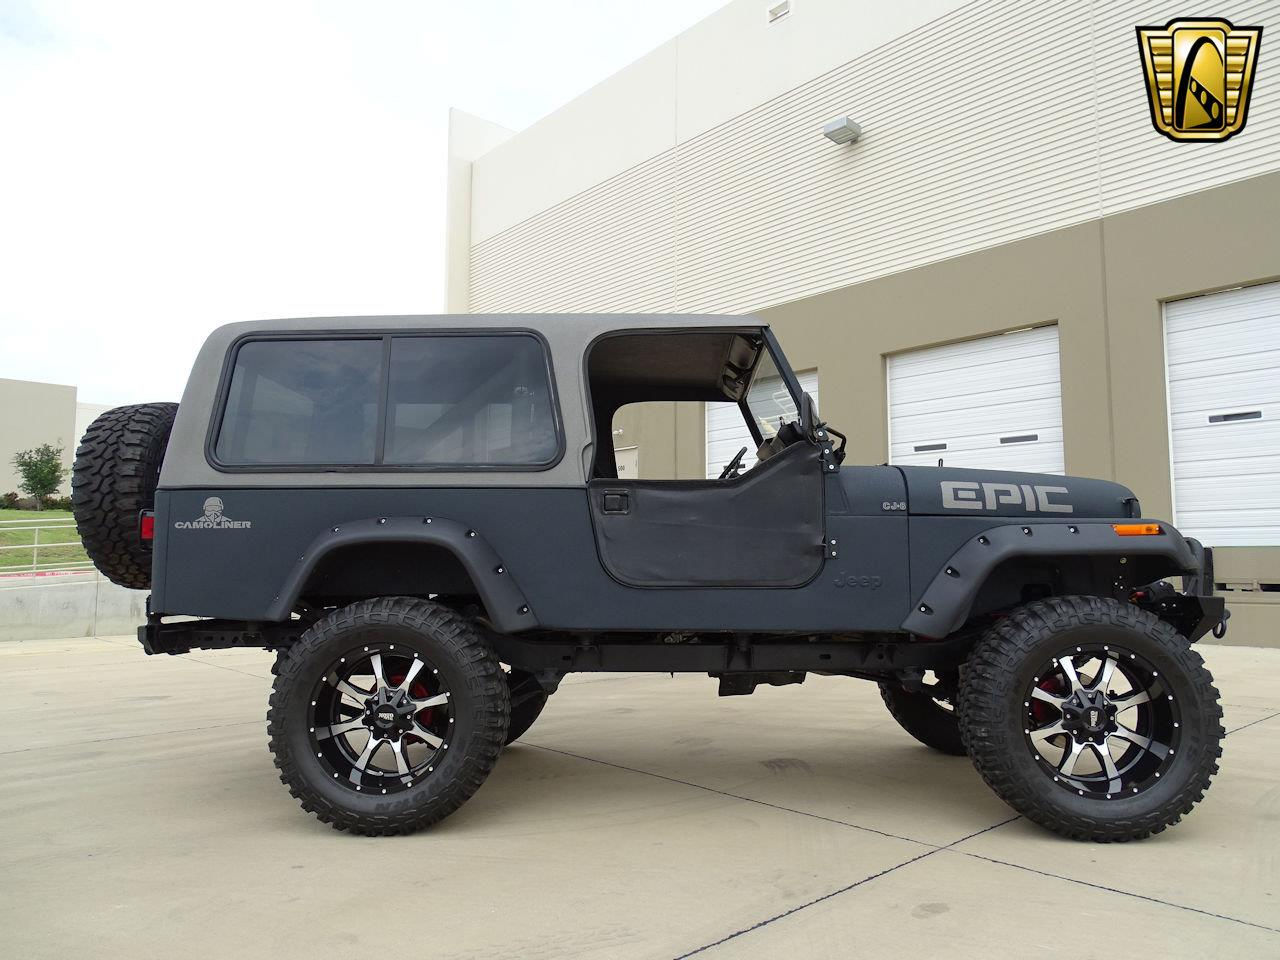 Large Picture of '81 Jeep CJ8 Scrambler located in Texas Offered by Gateway Classic Cars - Dallas - LRUP